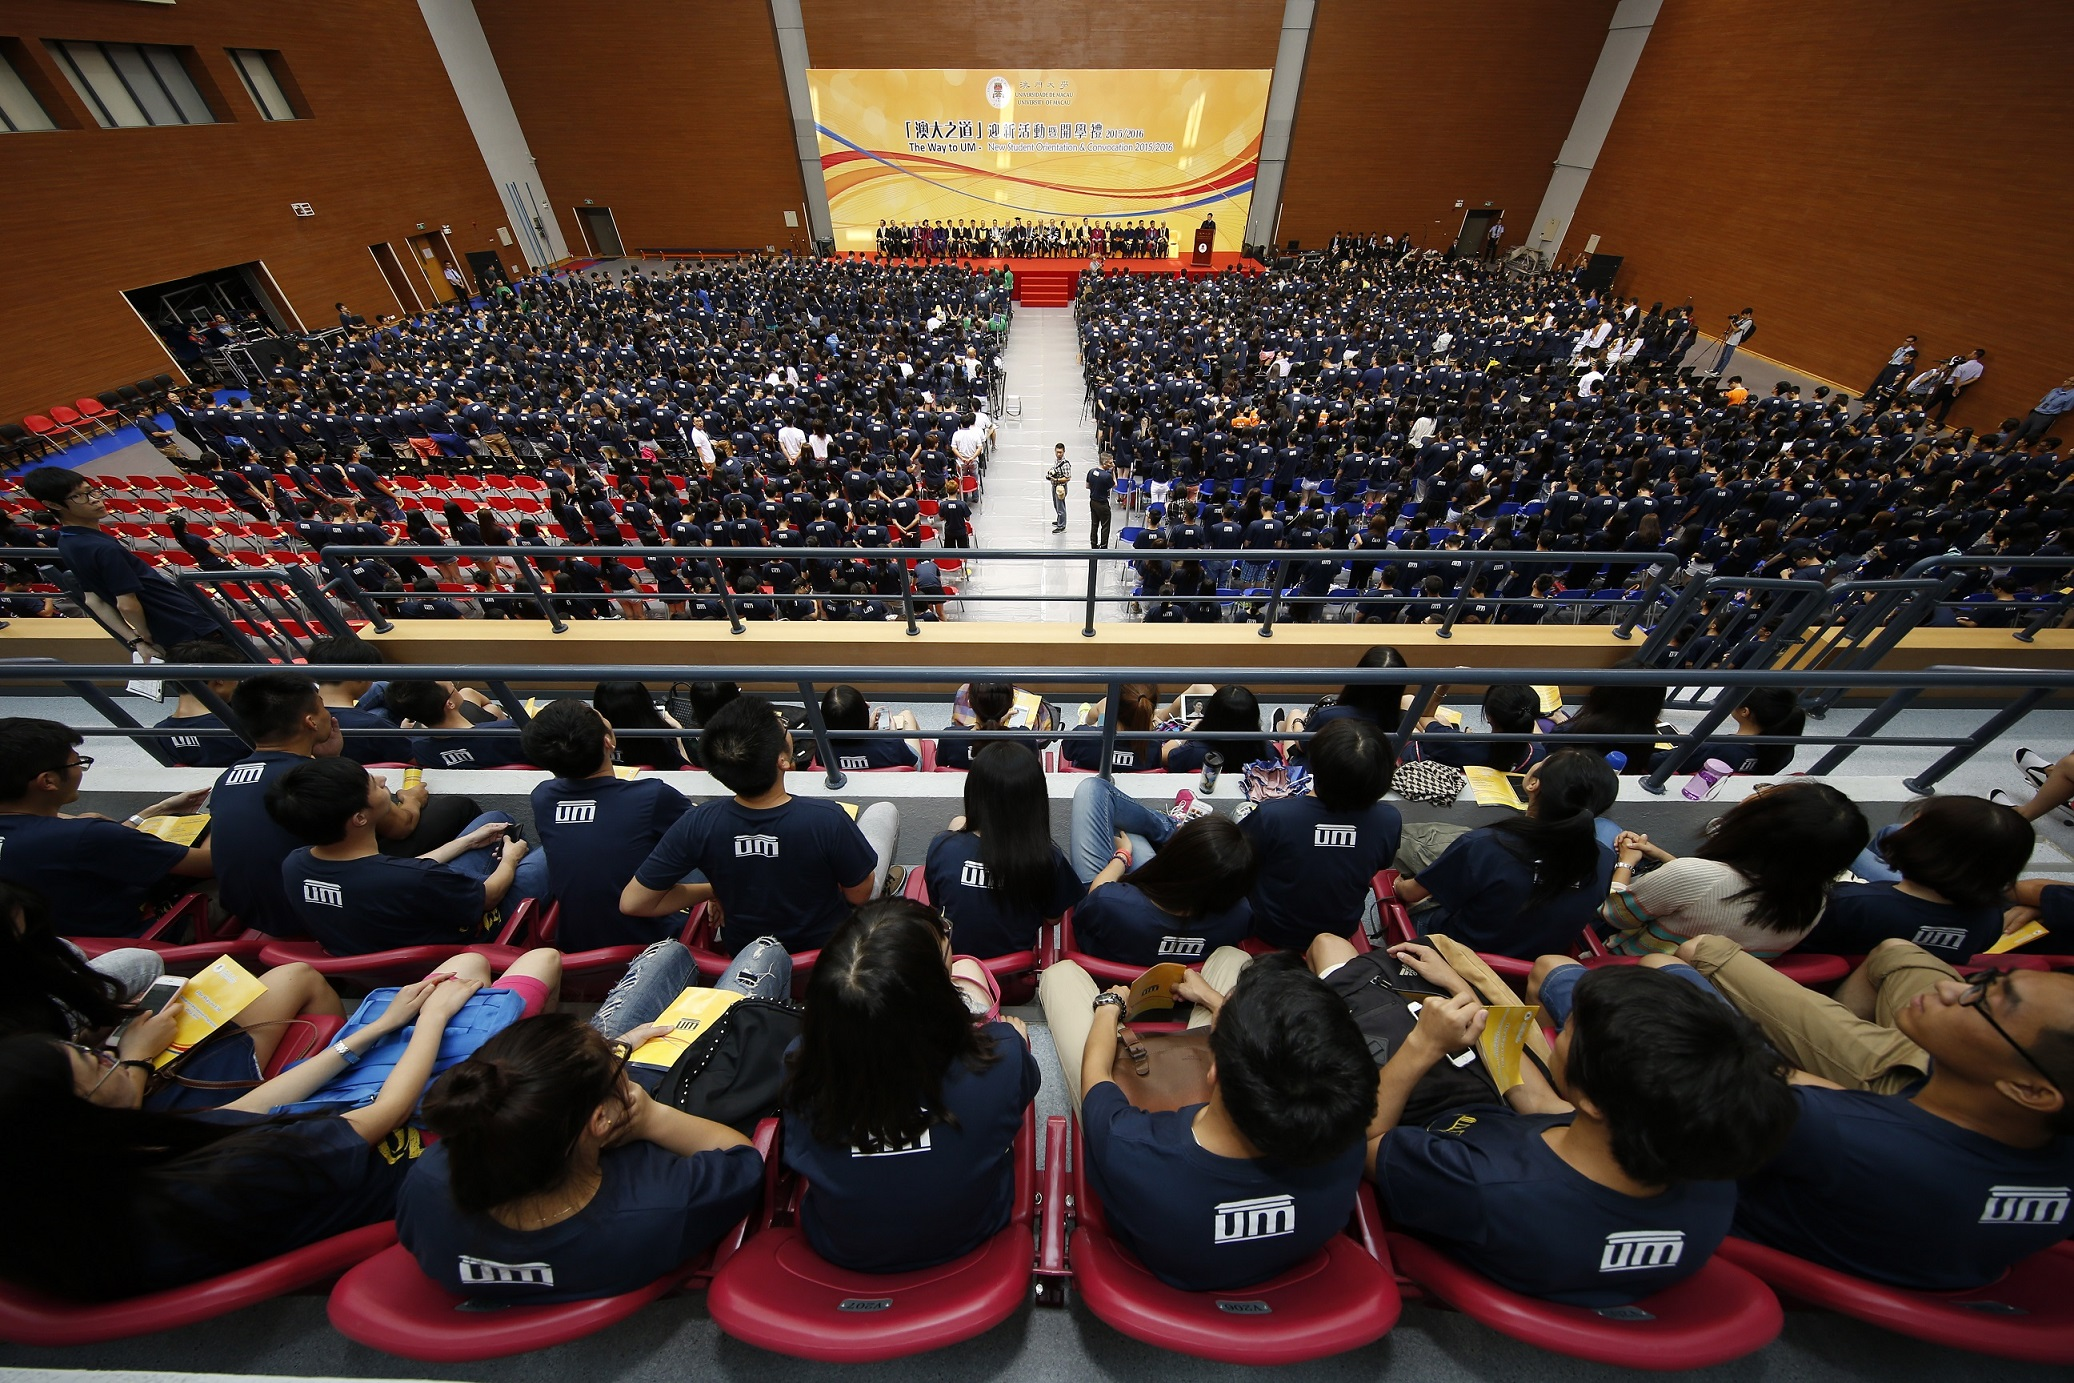 UM holds the convocation for the new academic year